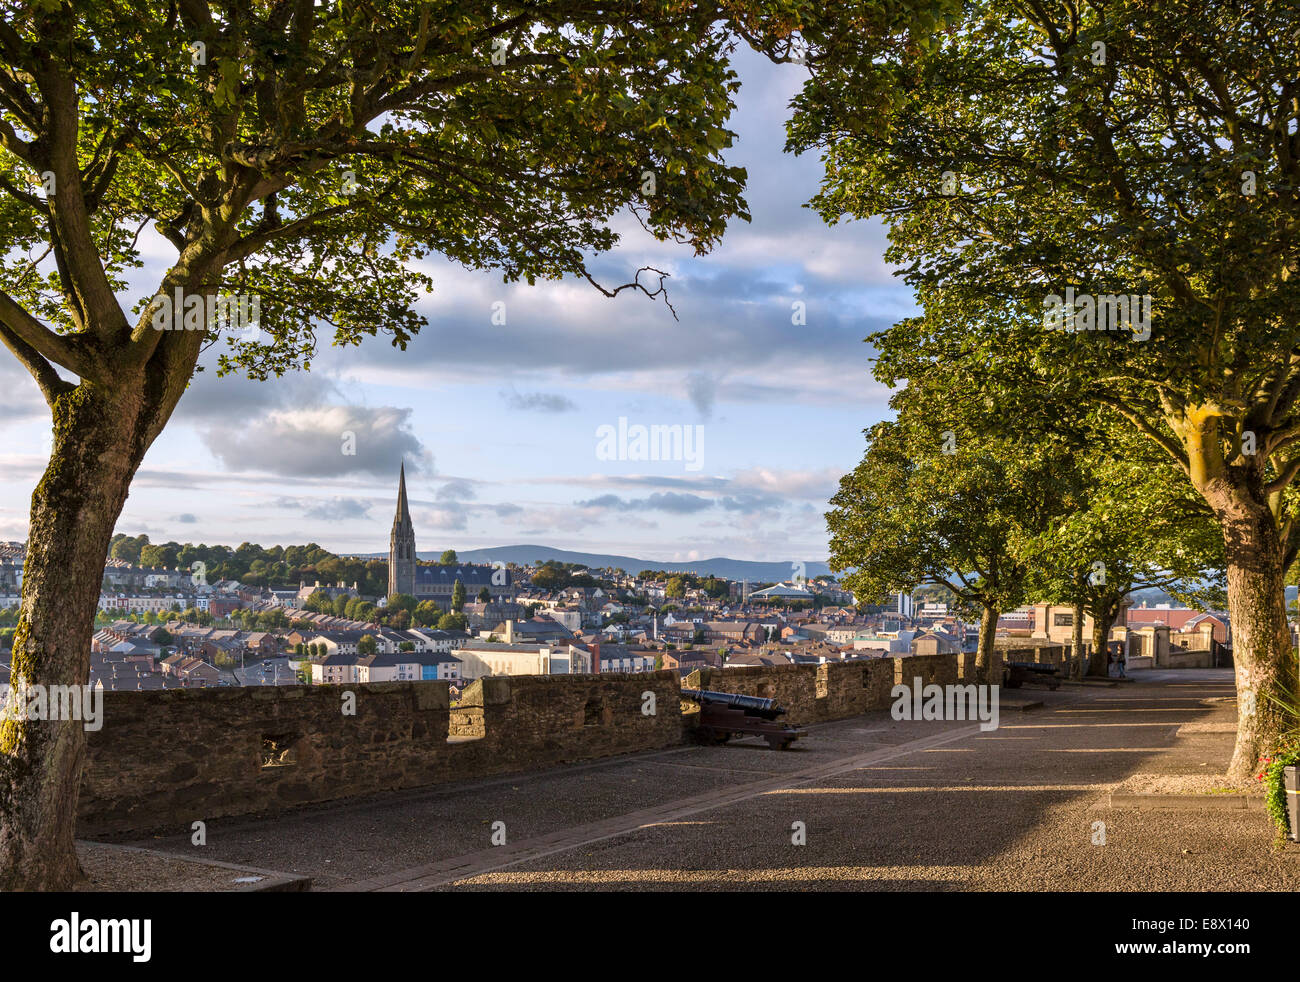 Old city walls in the early evening with St Eugene's Cathedral in the distance, Derry, County Londonderry, Northern - Stock Image